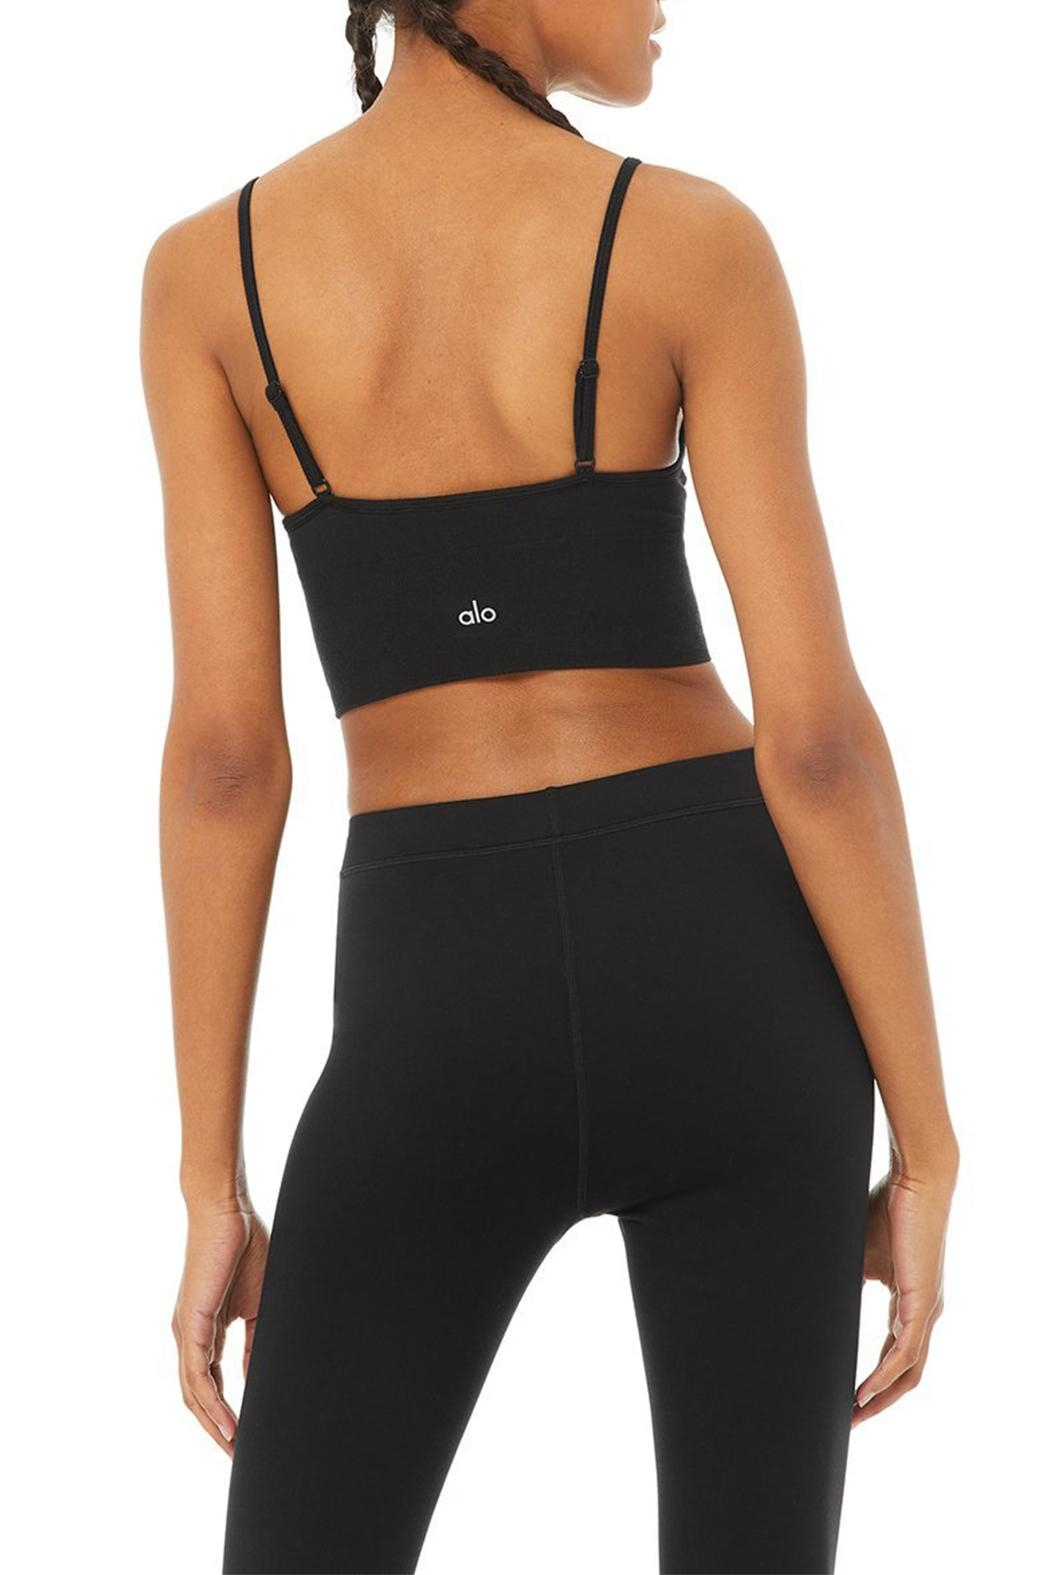 ALO Yoga Delight Bralette - Side Cropped Image